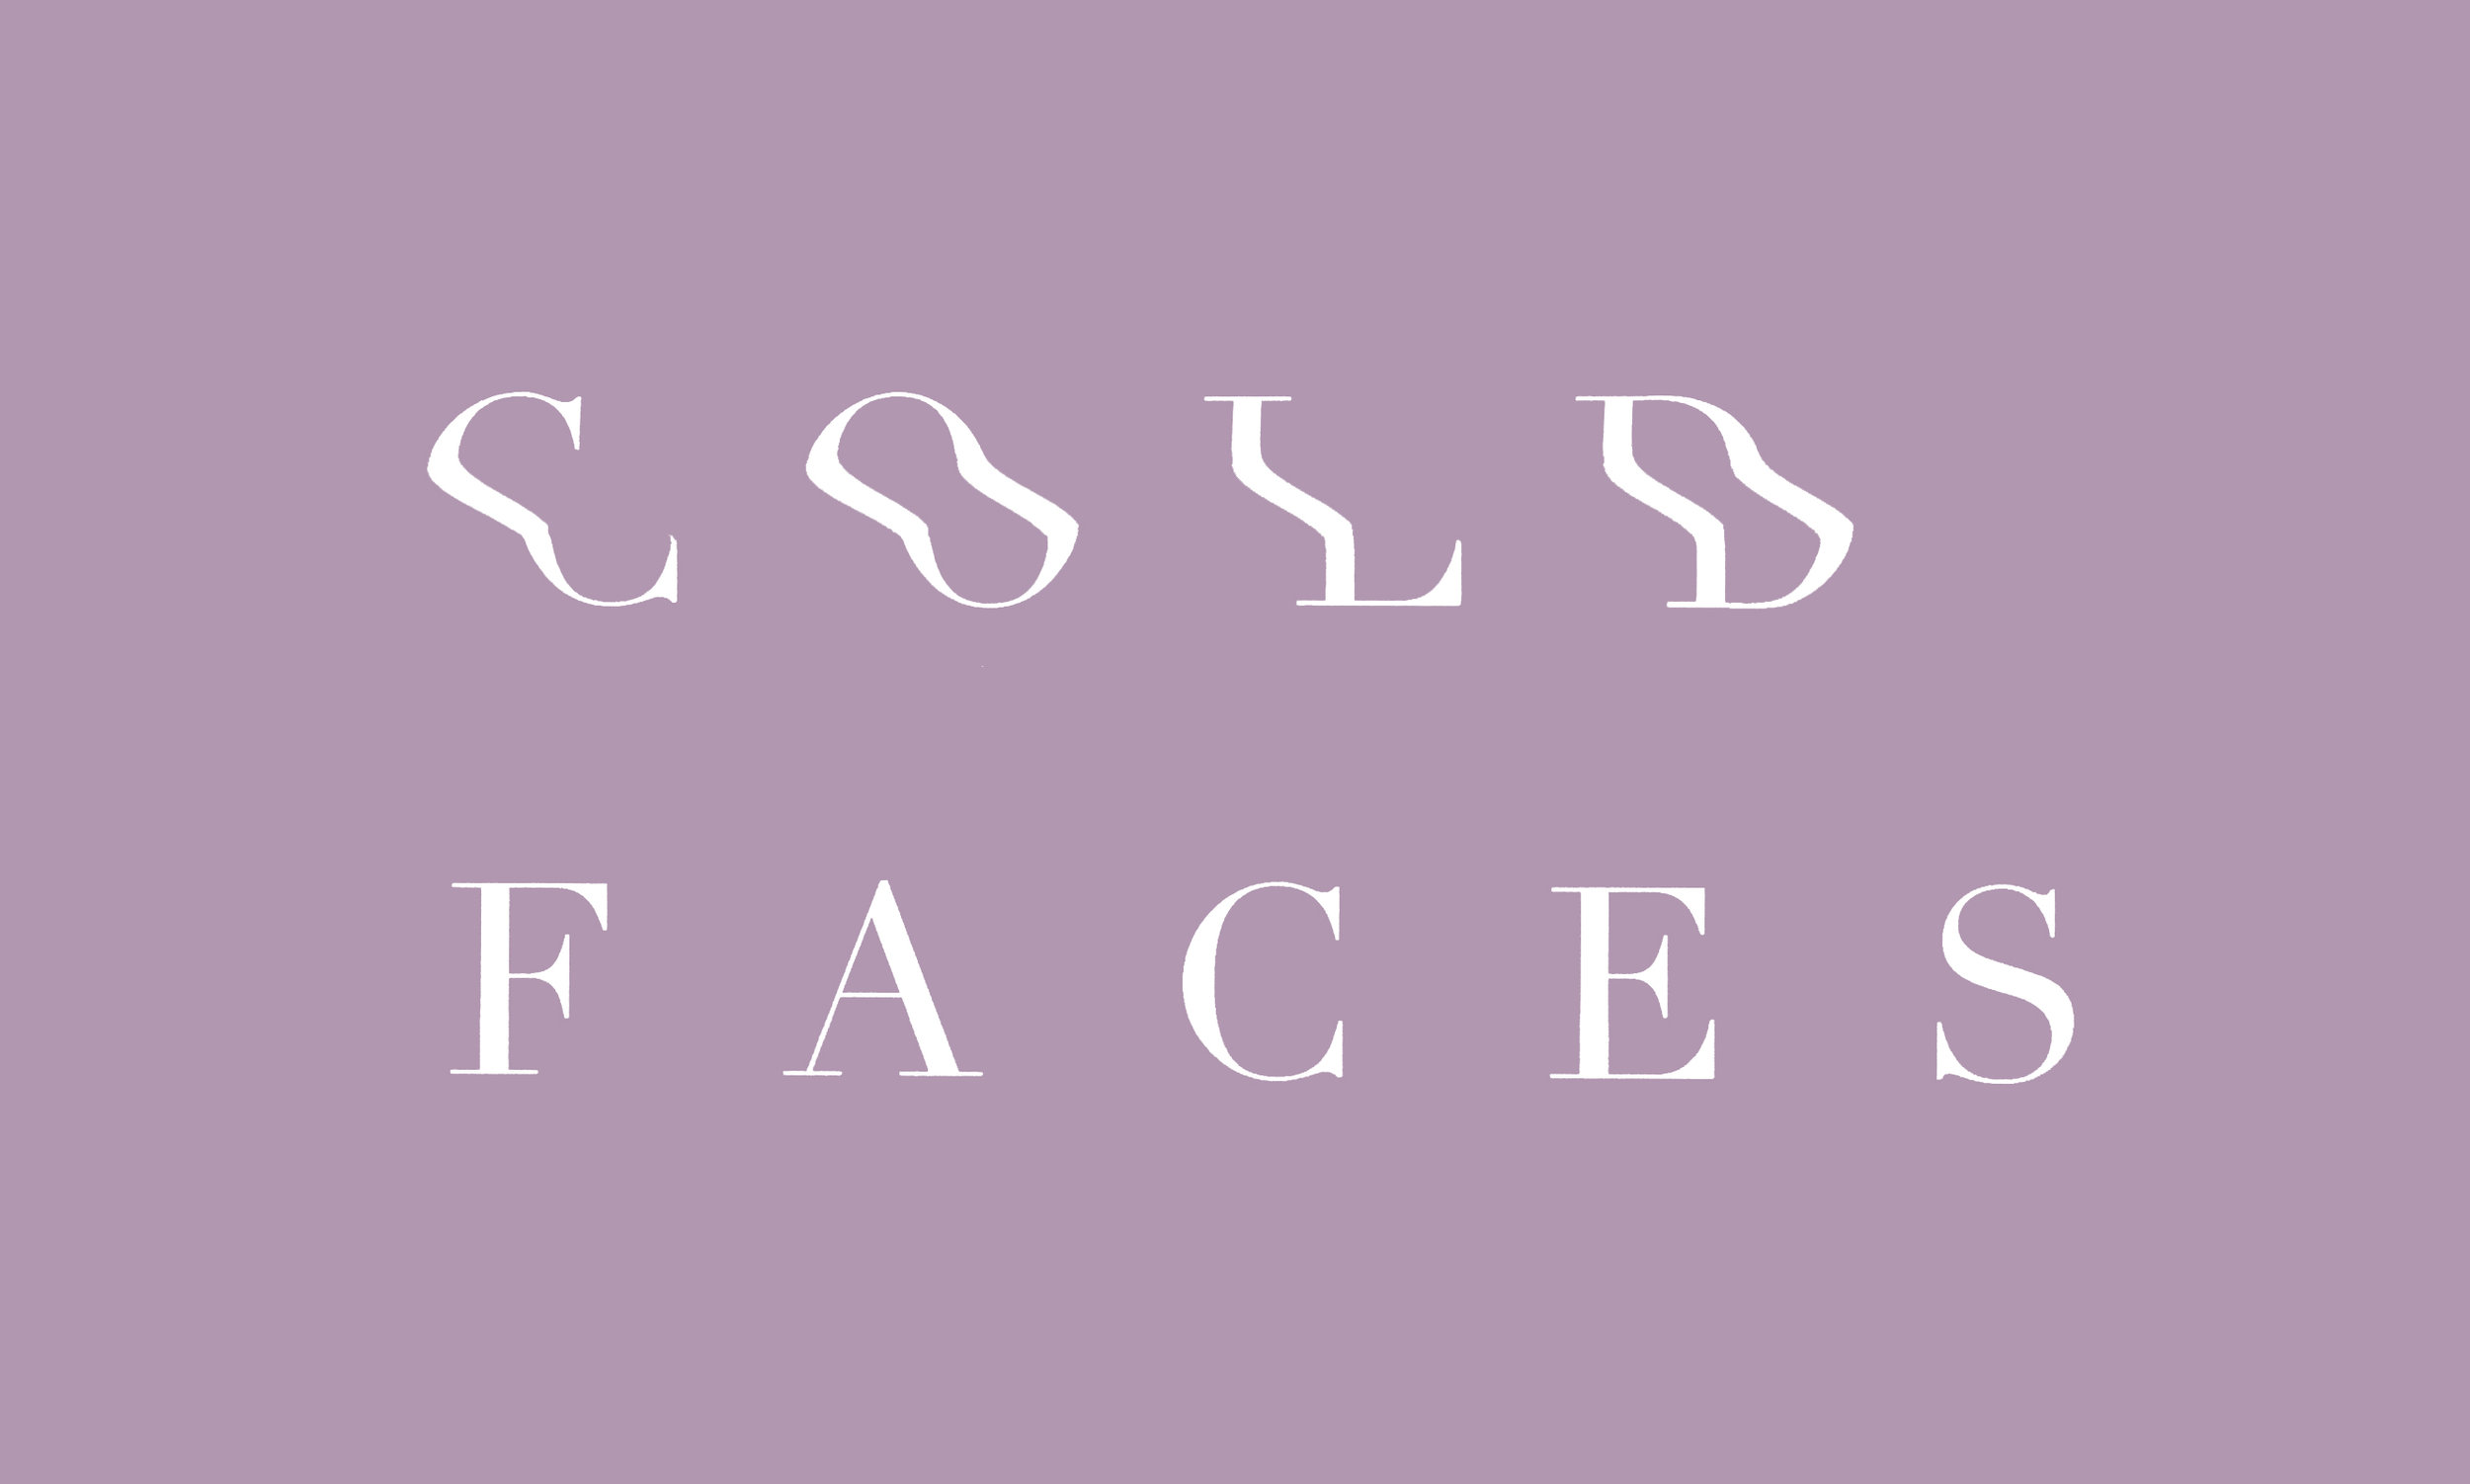 cold faces distorted type.jpg